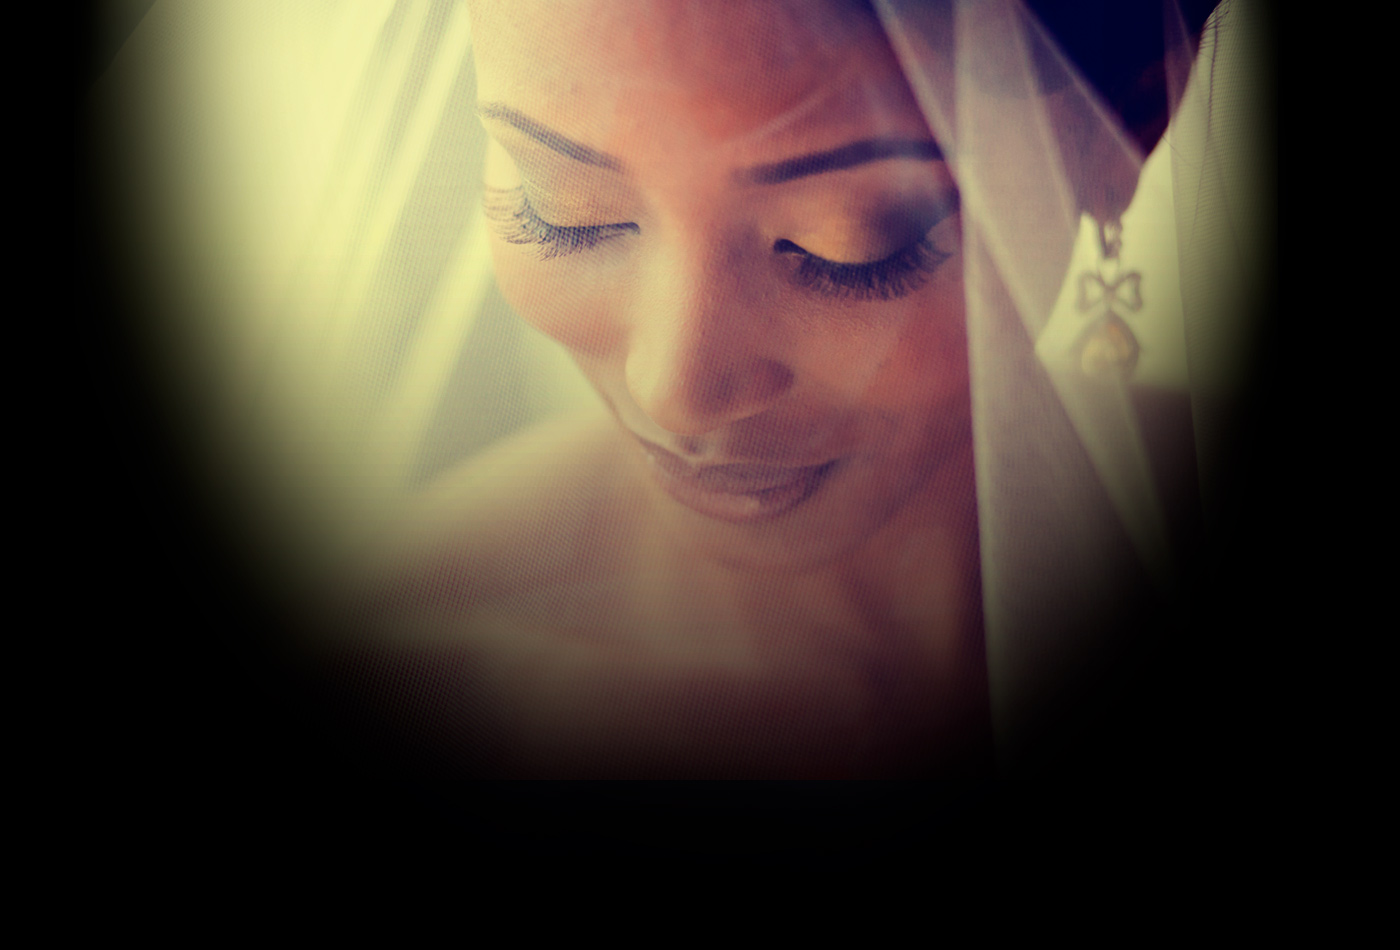 Wedding Planner services in the city of London